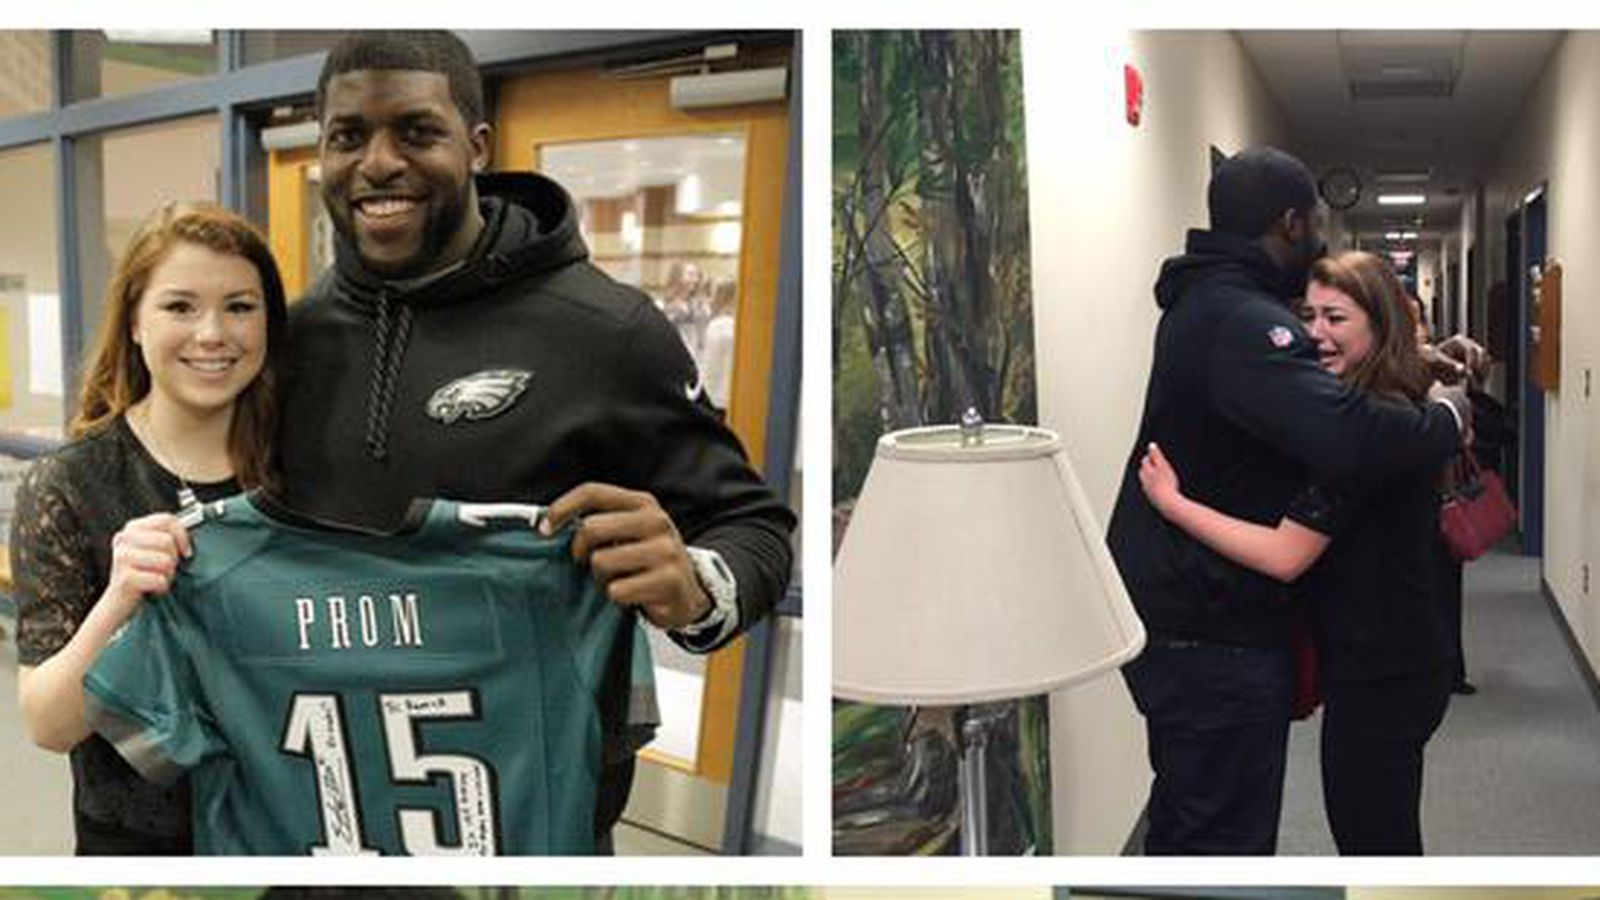 How To Recall An Email >> Emmanuel Acho shows up at high school to surprise his Eagles fan prom date - Bleeding Green Nation